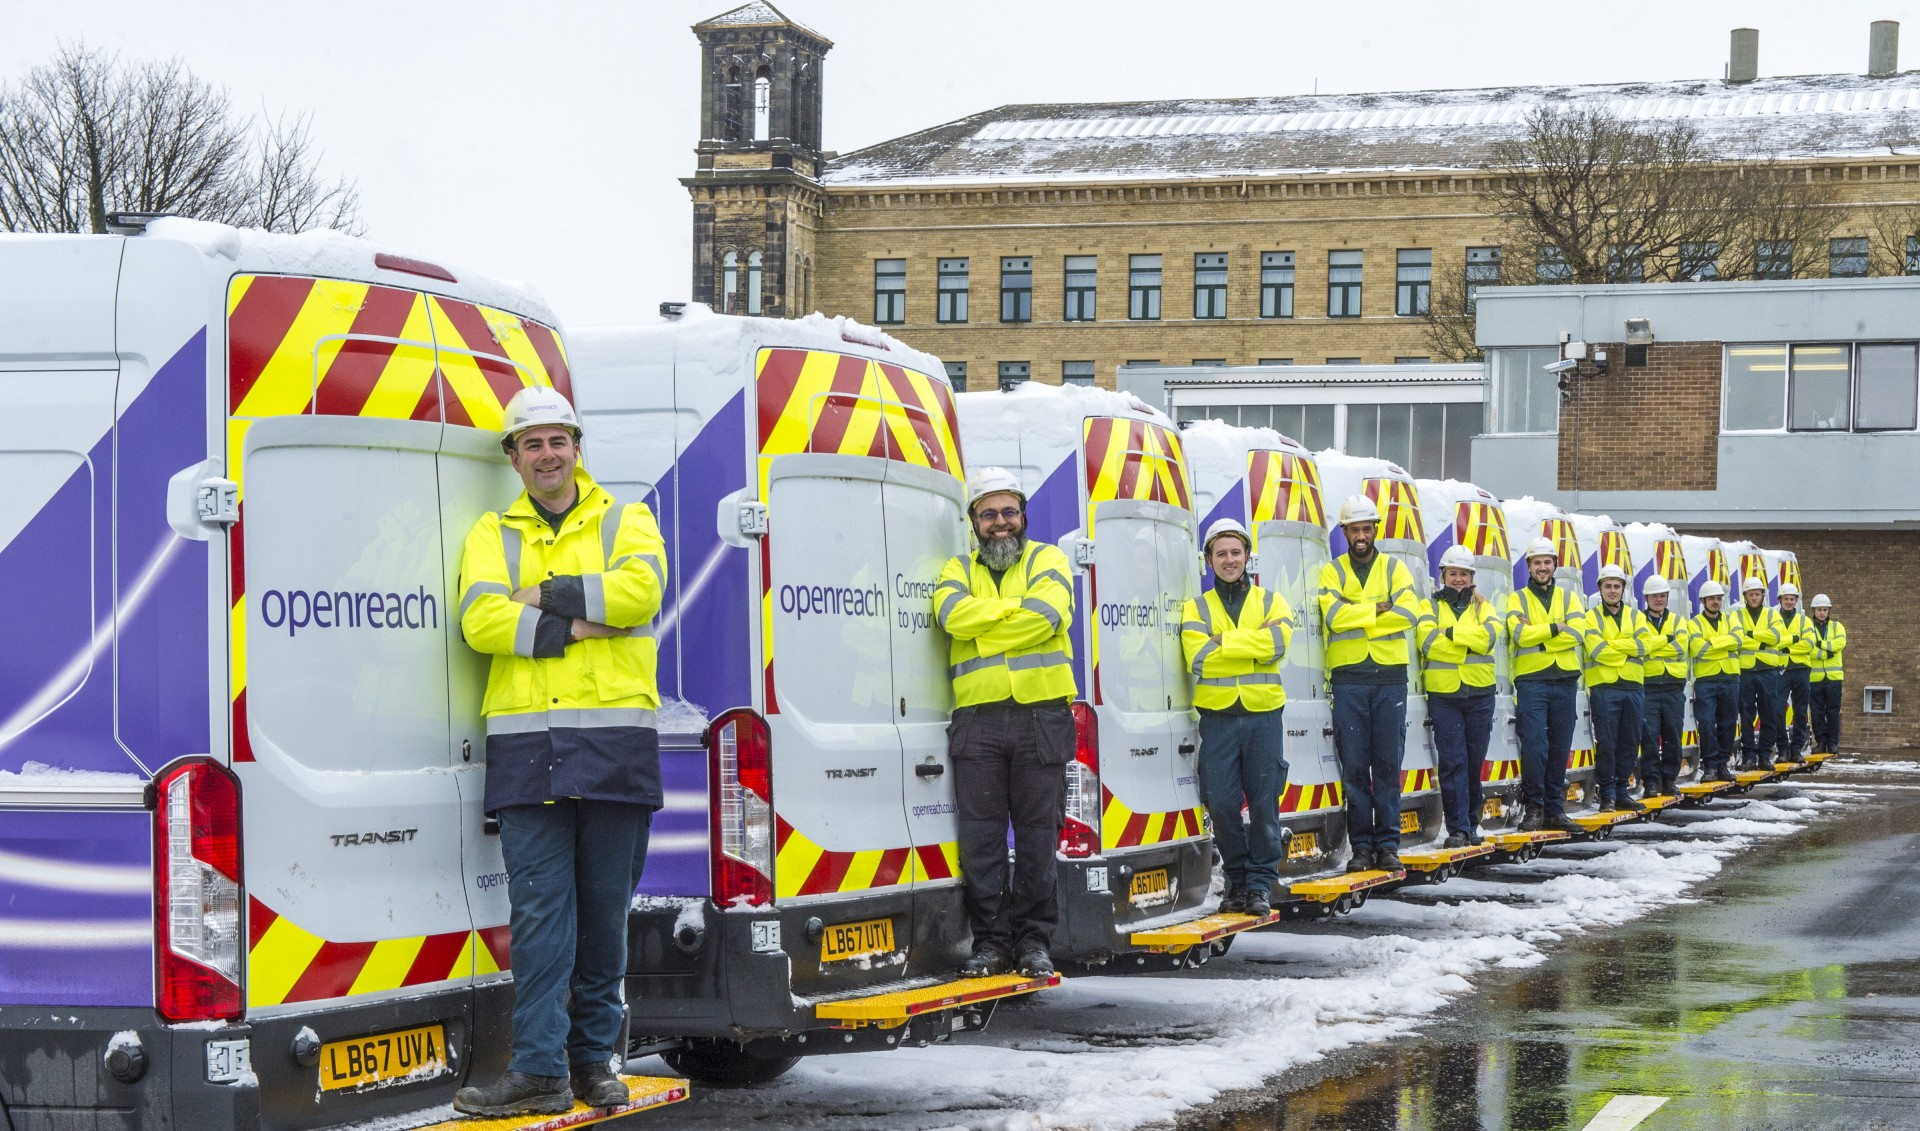 Openreach to ramp up full-fibre build after Ofcom ruling